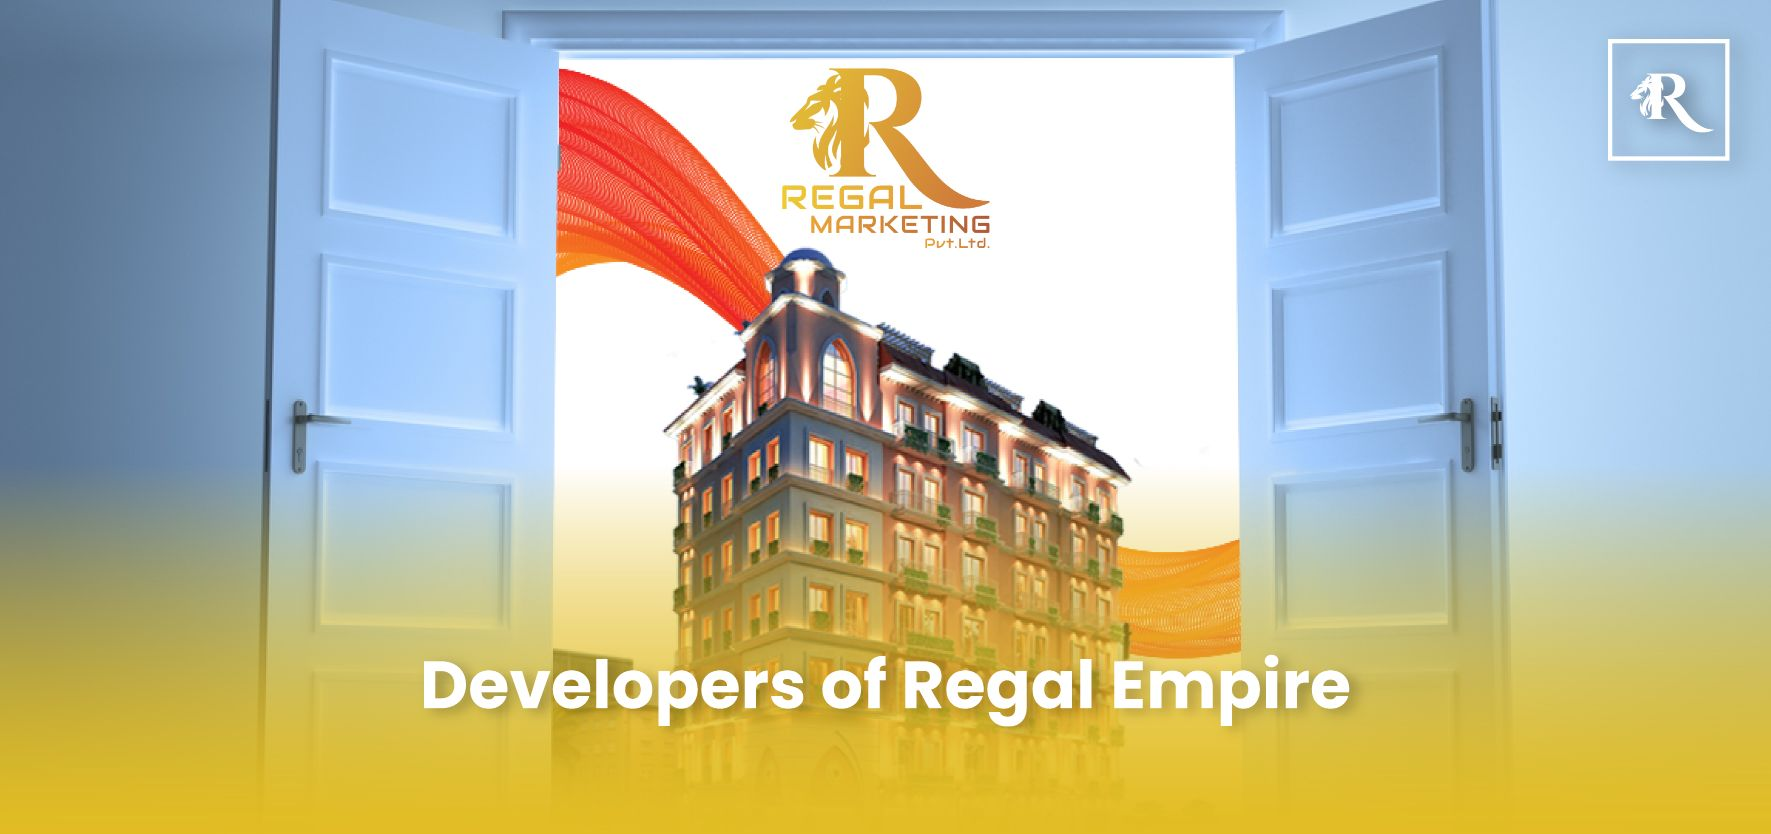 Developers of Regal Empire